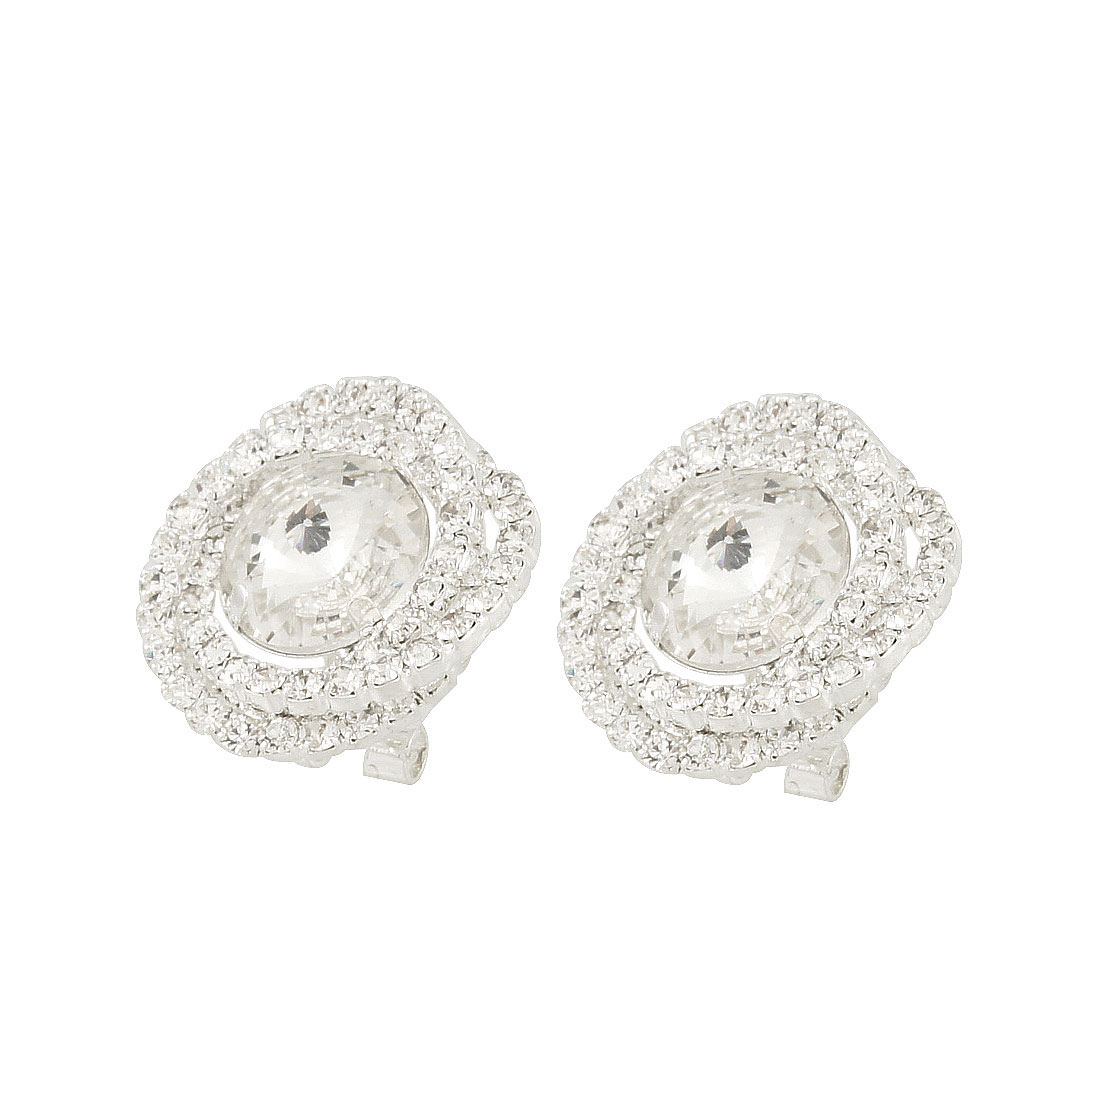 Pair Clear Faux Crystal Center Plastic Rhinestone Detail Round Earrings for Lady